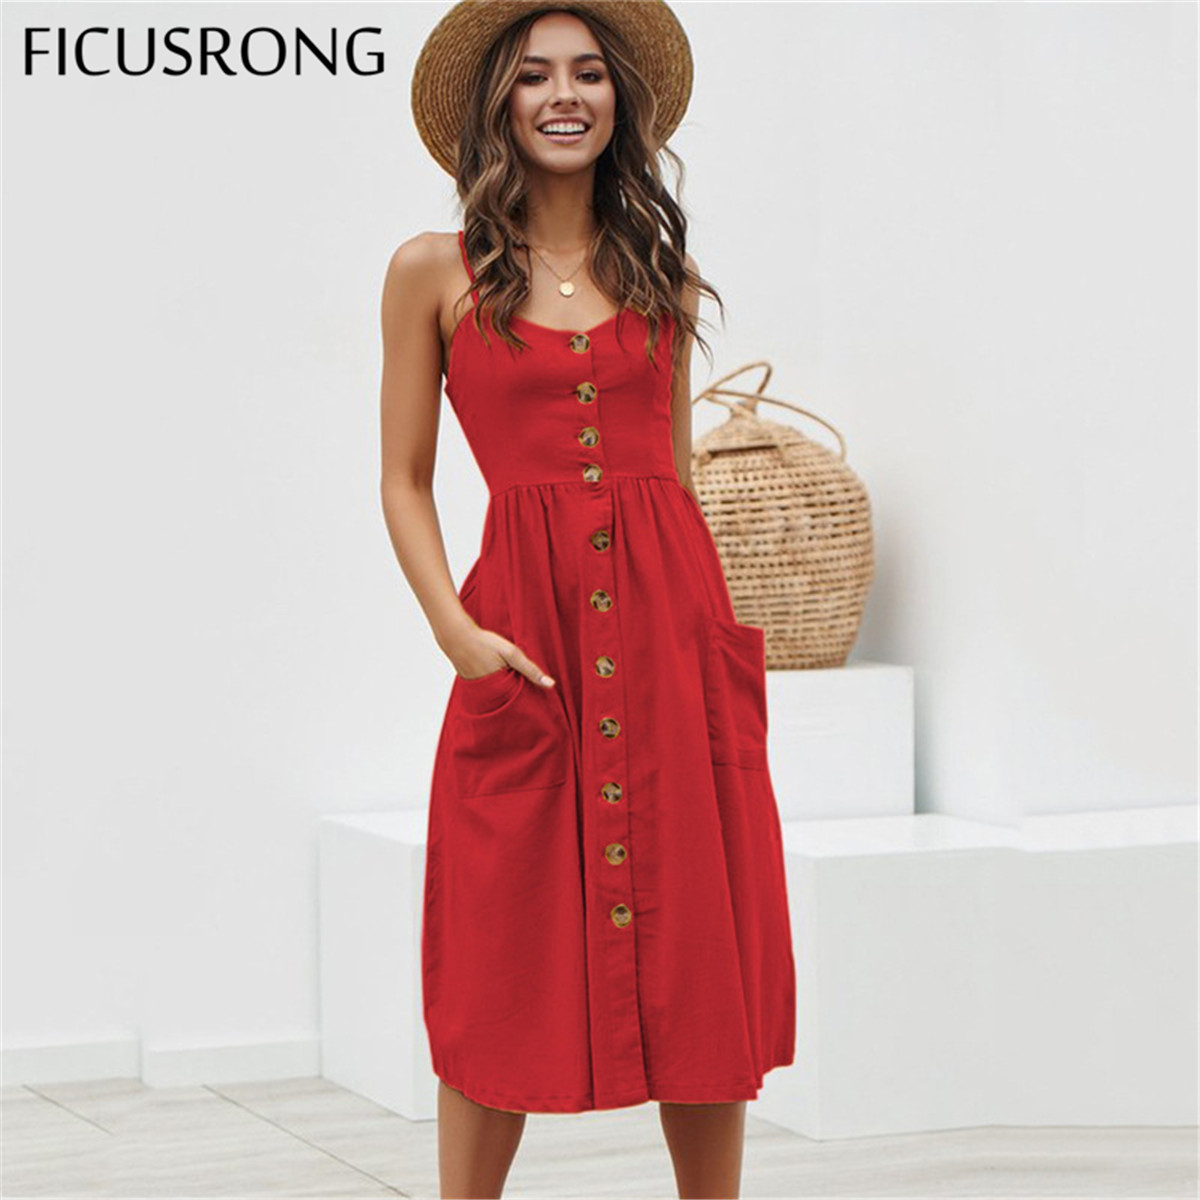 Elegant Button Women Dress Polka Dots Red Cotton Midi Dress 2019 Summer Casual Female Plus Size Lady Beach vestidos FICUSRONG